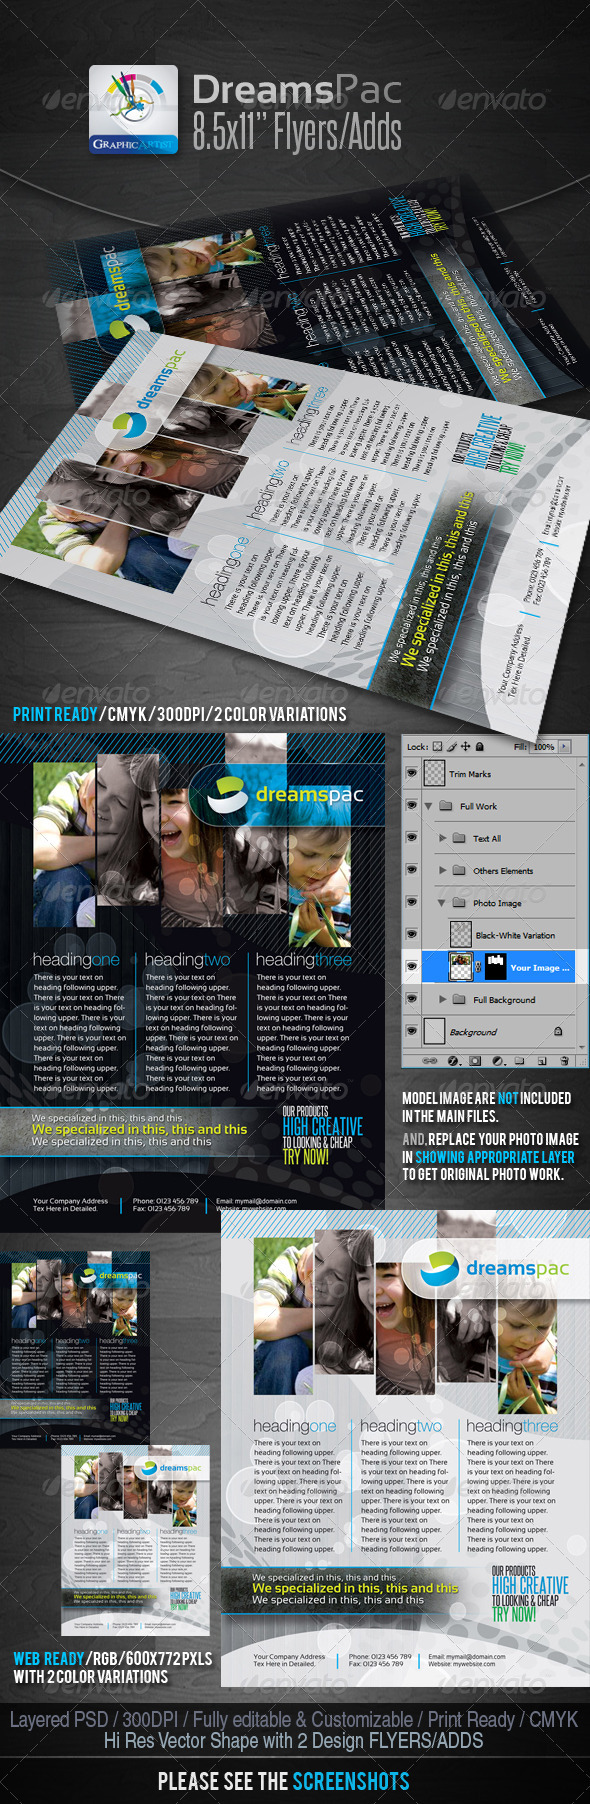 DreamsPac Flyers/Adds For Print/Web - Clubs & Parties Events